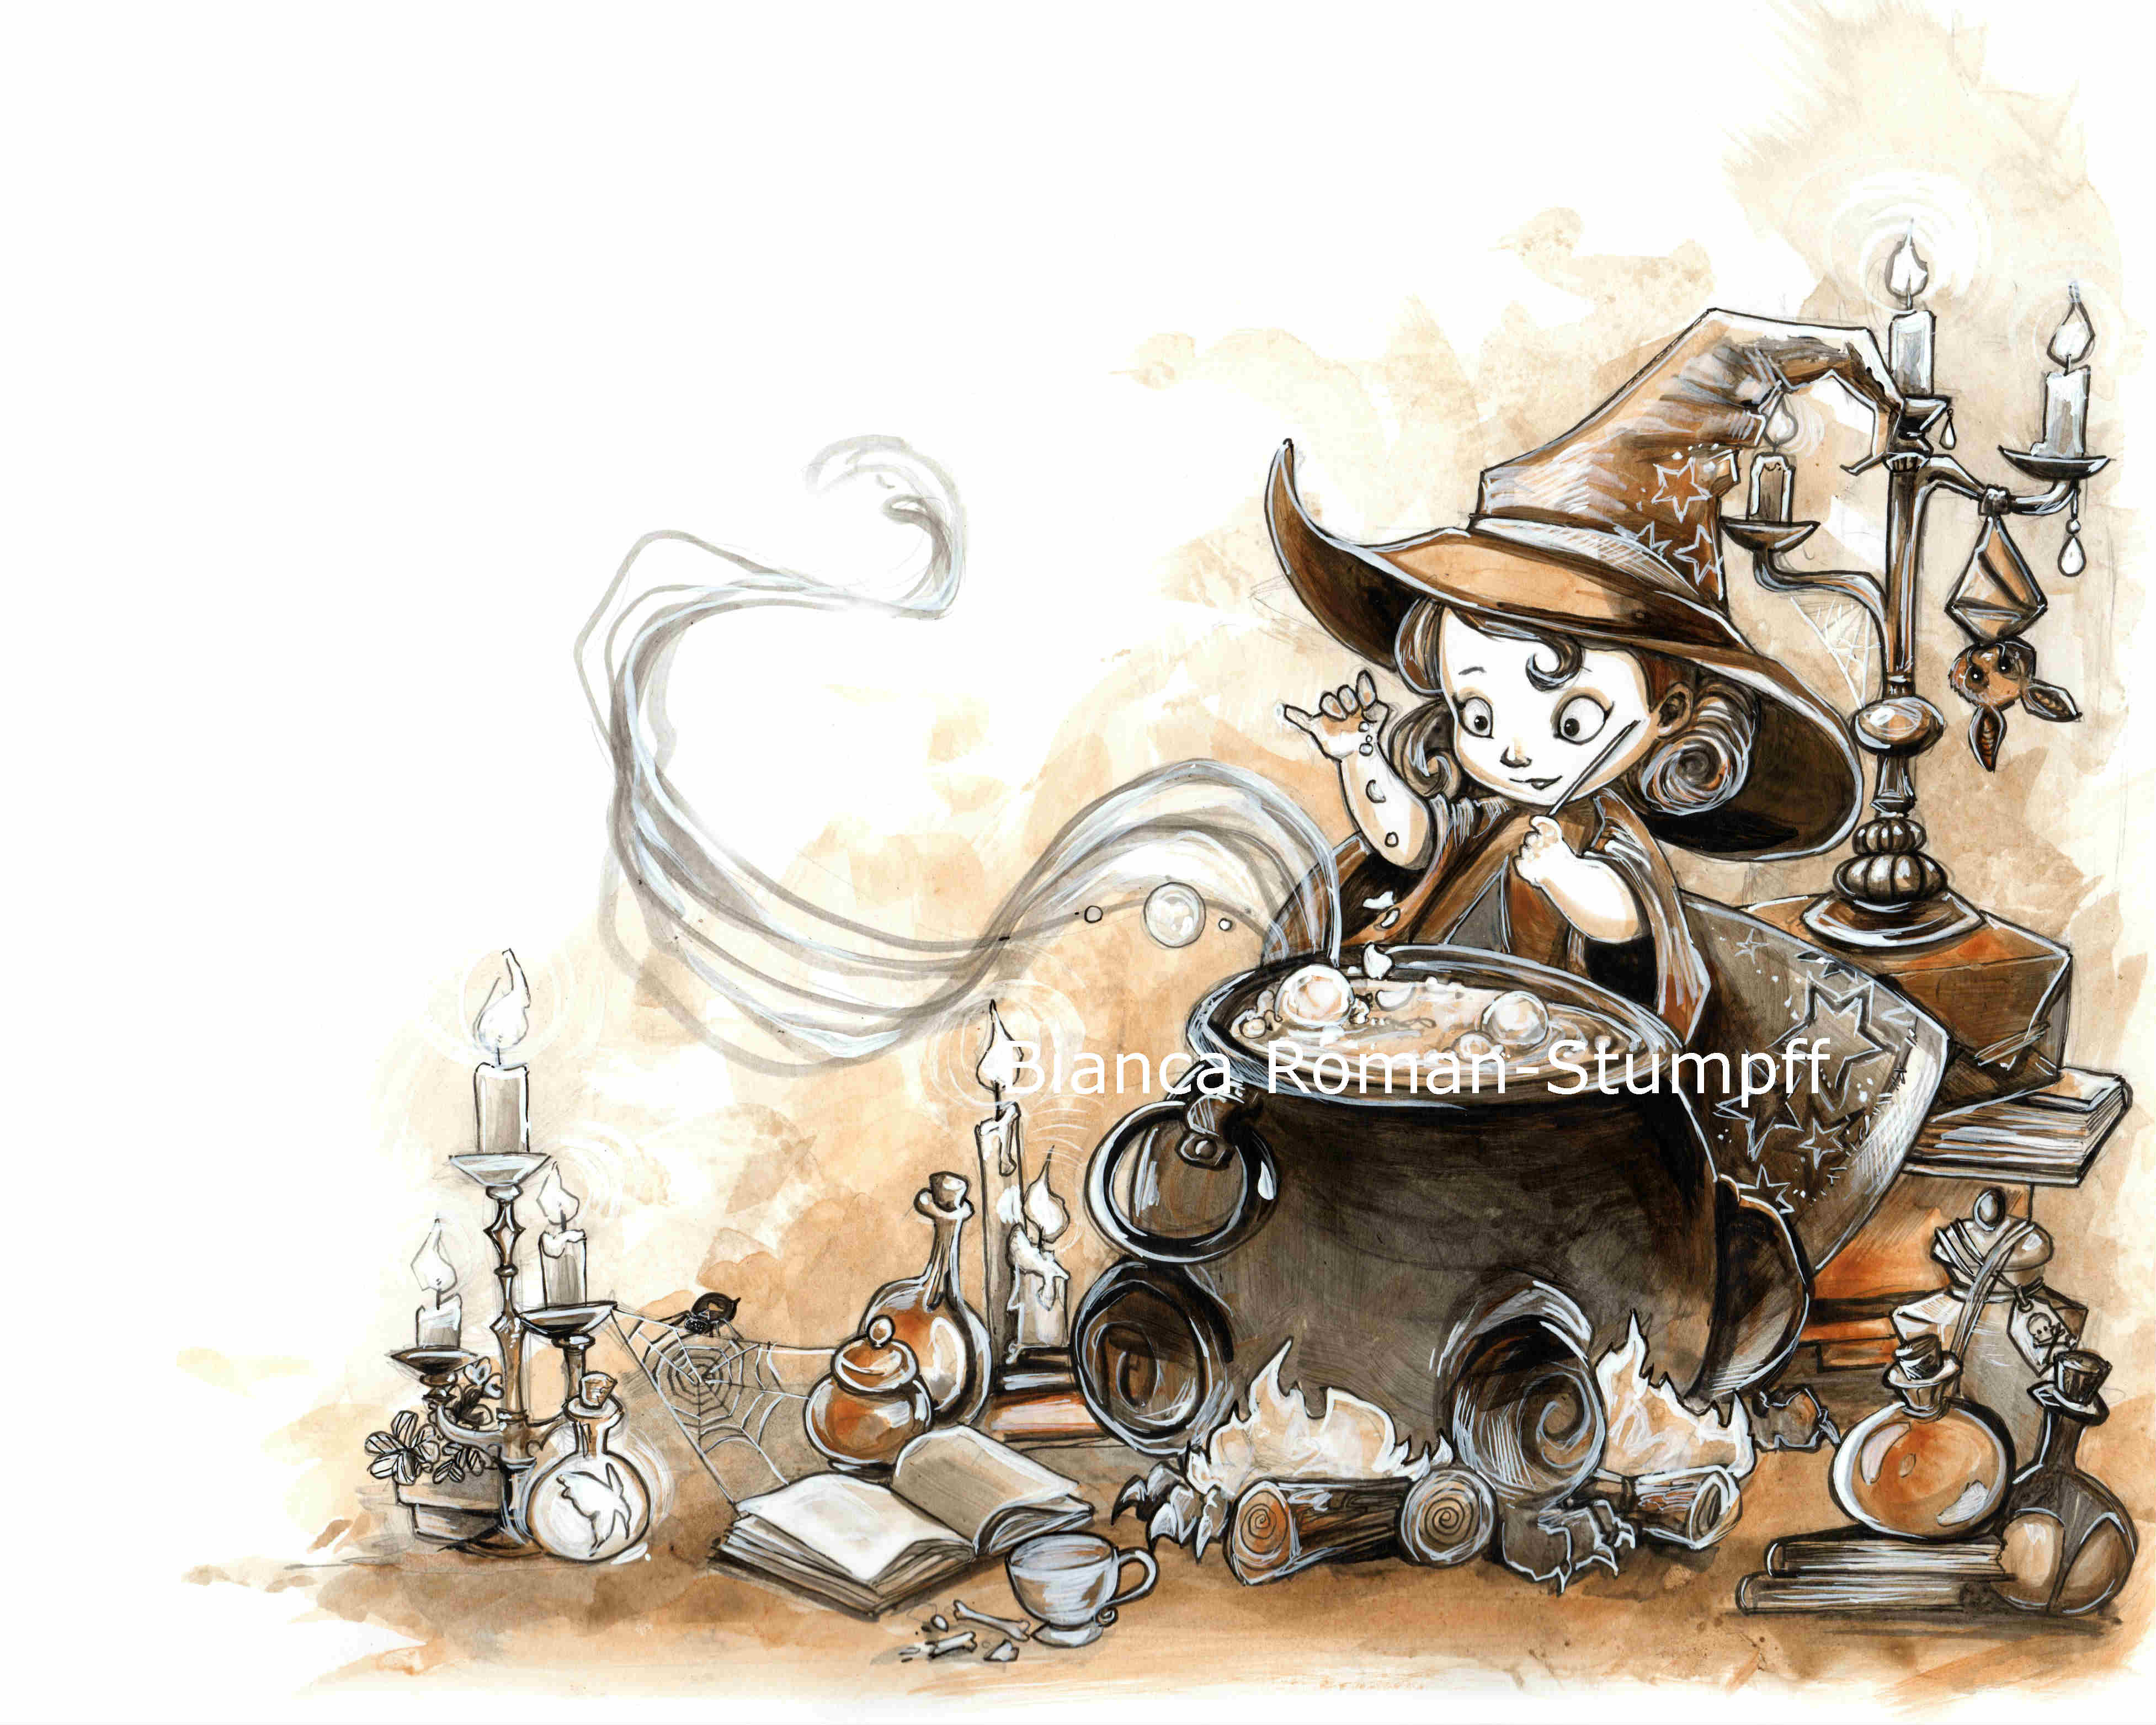 Uncategorized Witch Pictures To Print little witch print art of bianca roman stumpff online store print